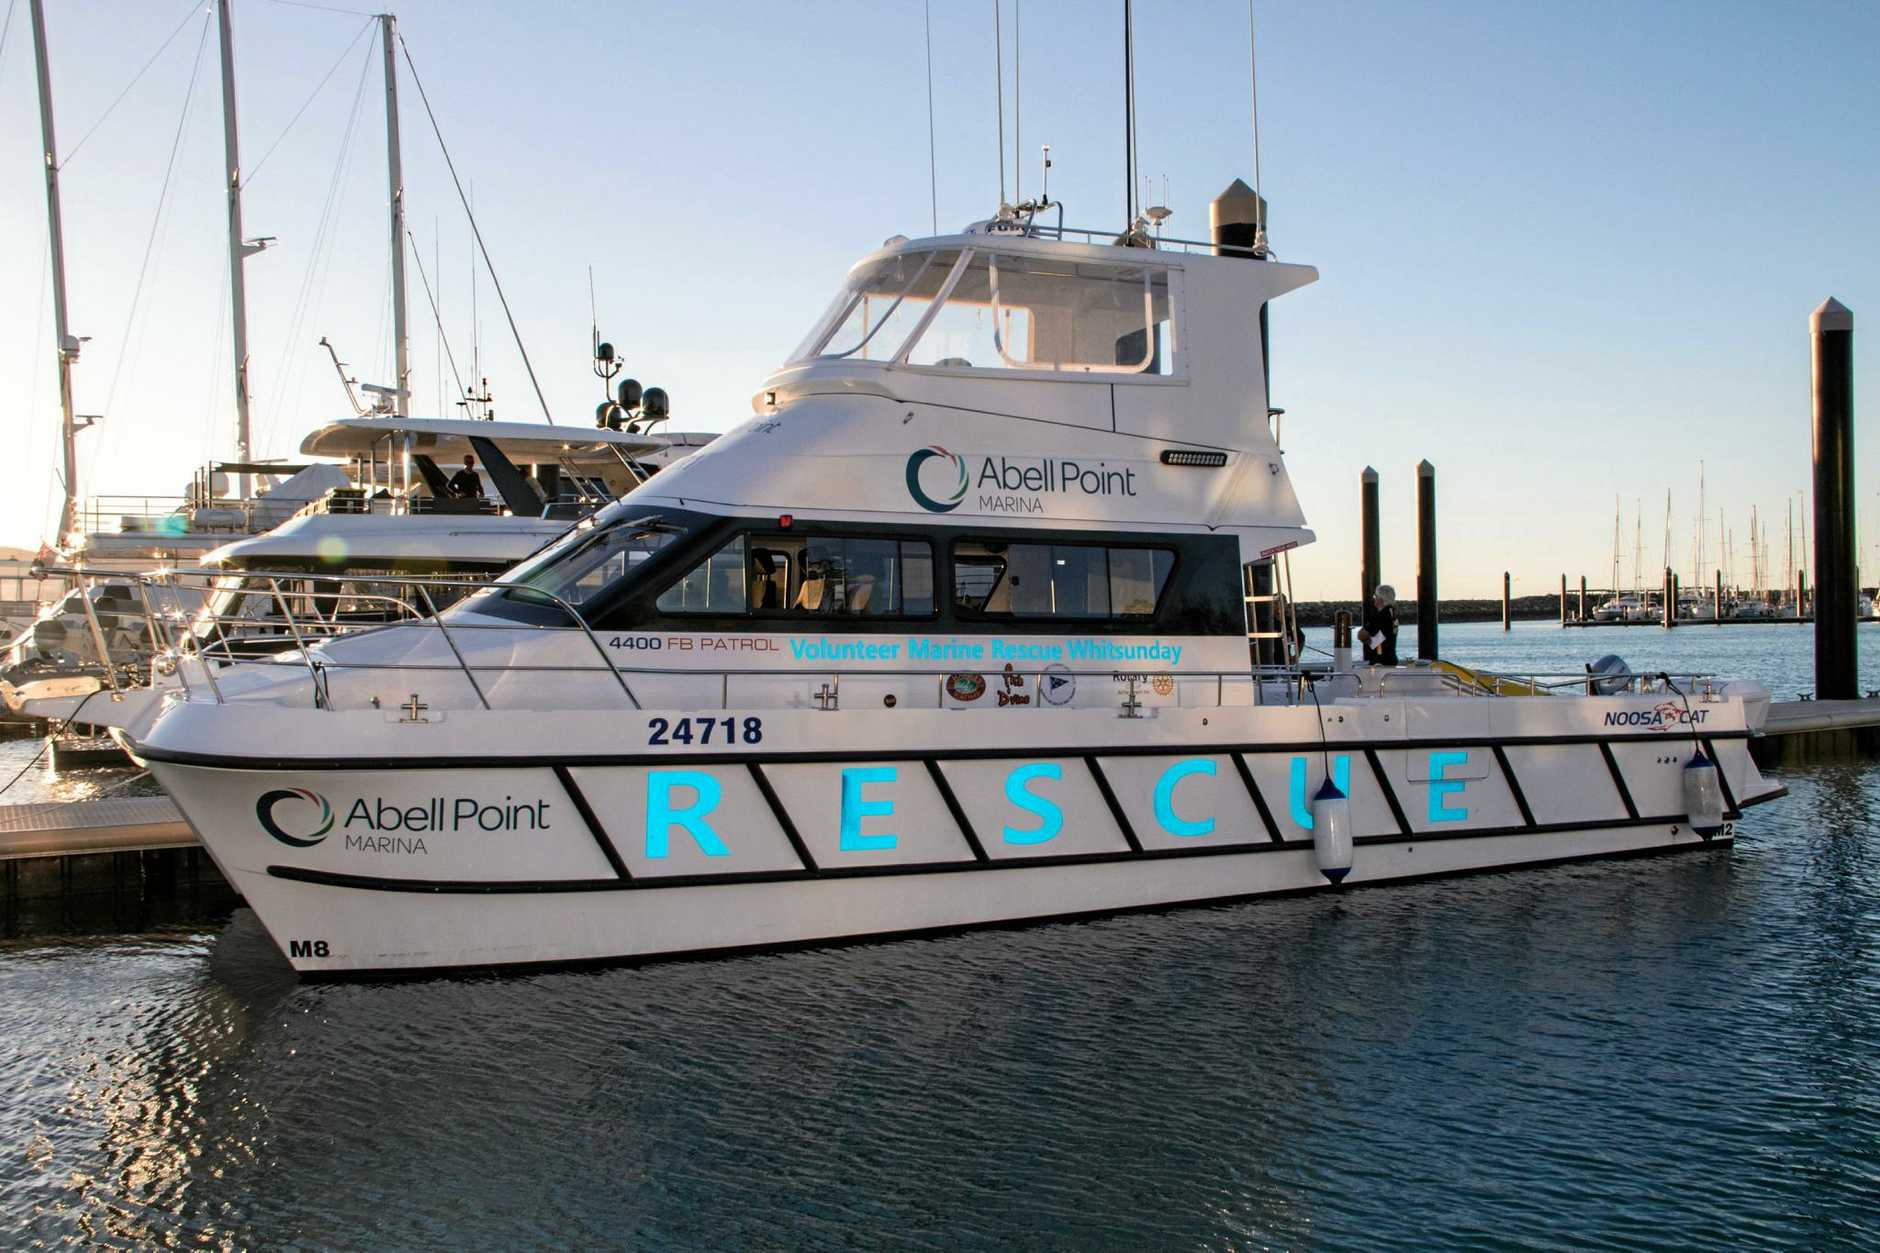 BRAND NEW: The Abell Point Marina VMR1.